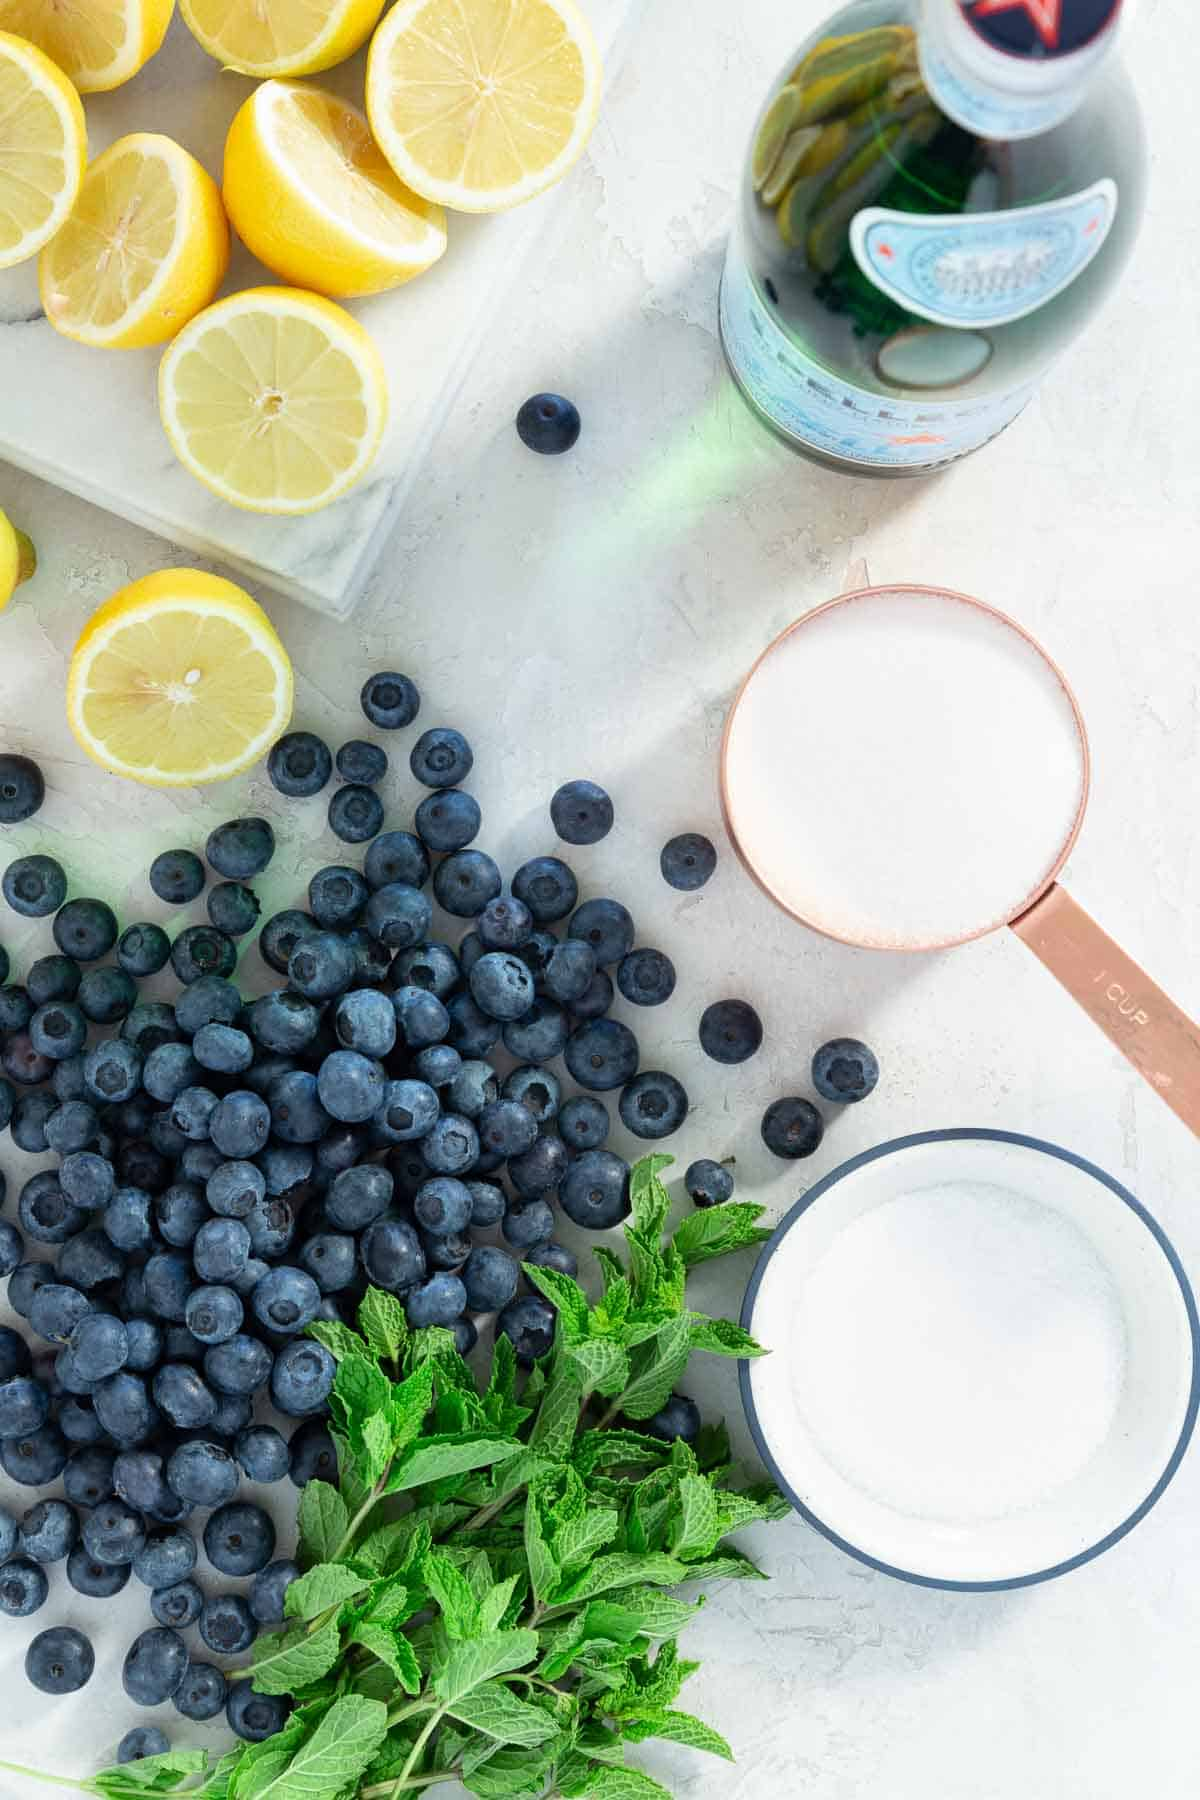 Fresh blueberries, mint, sugar, lemons, and sparkling water on a white marble counter.